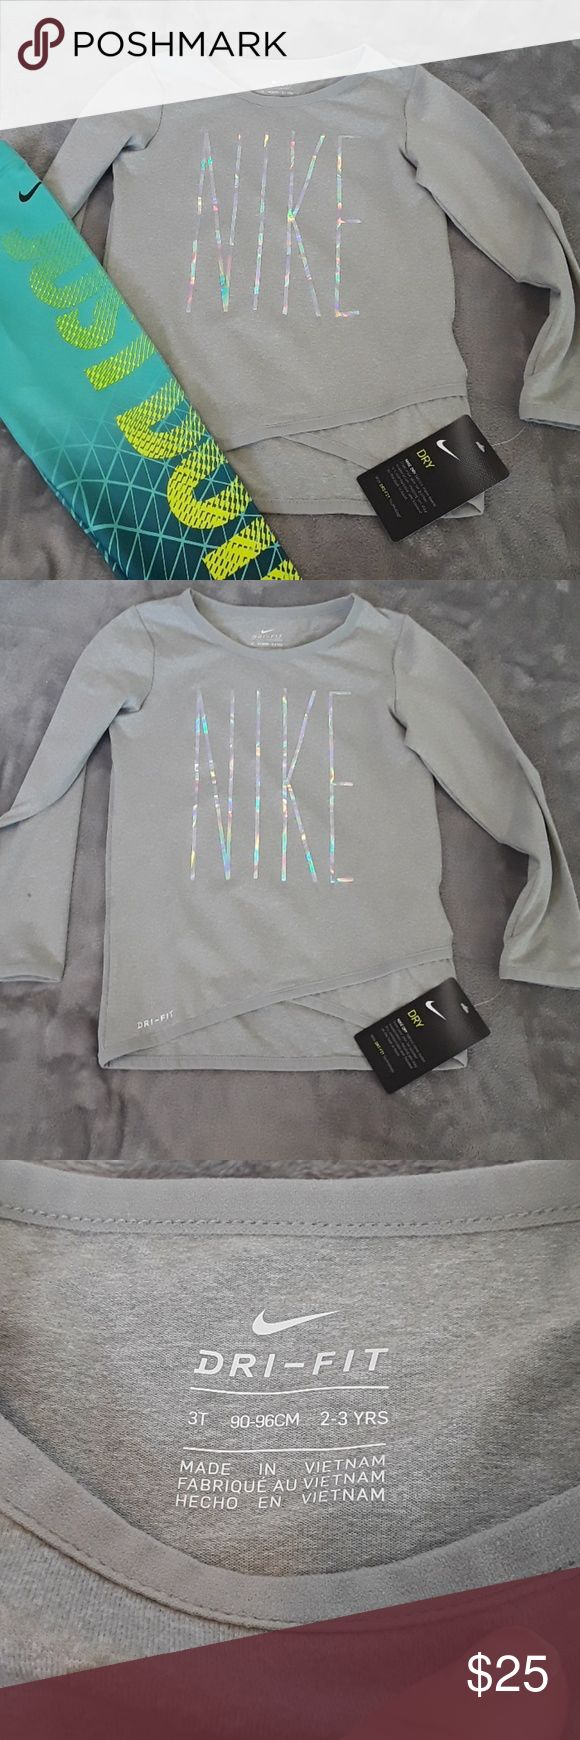 NWT Nike Top Brand new. Nike Dri Fit Top. Gray with rainbow hologram colors for lettering. Check out my other listings bundle and save! ☺ Nike Shirts & Tops